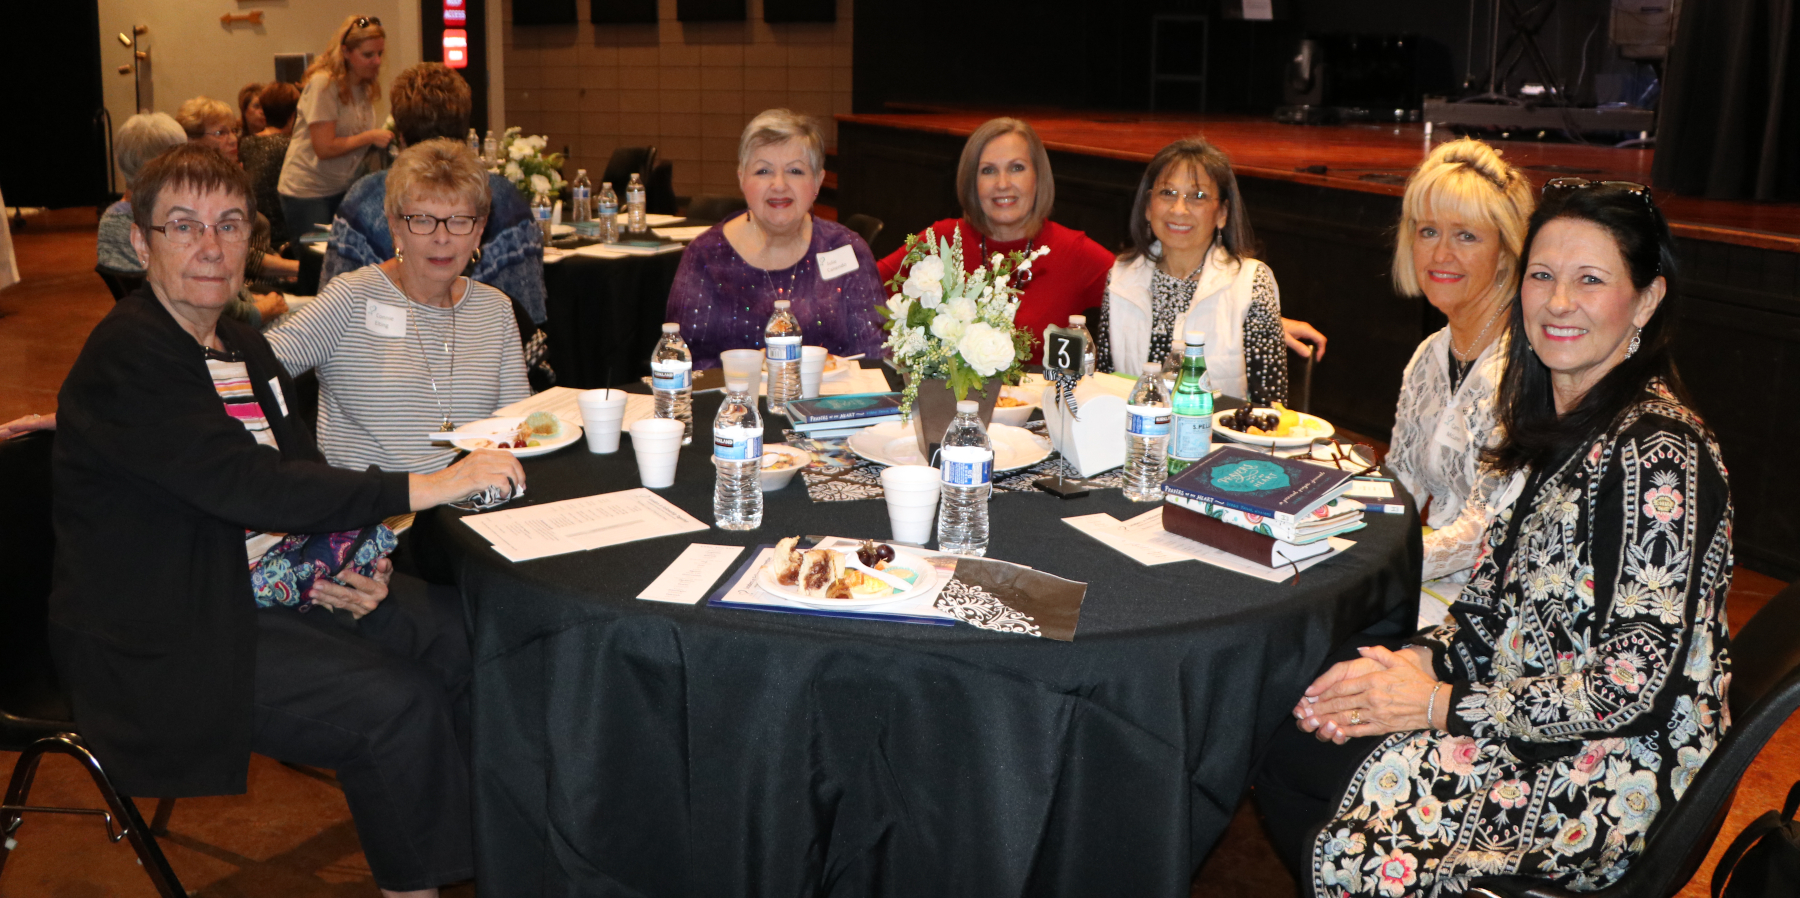 LIFT event - seven smiling women around a conference table